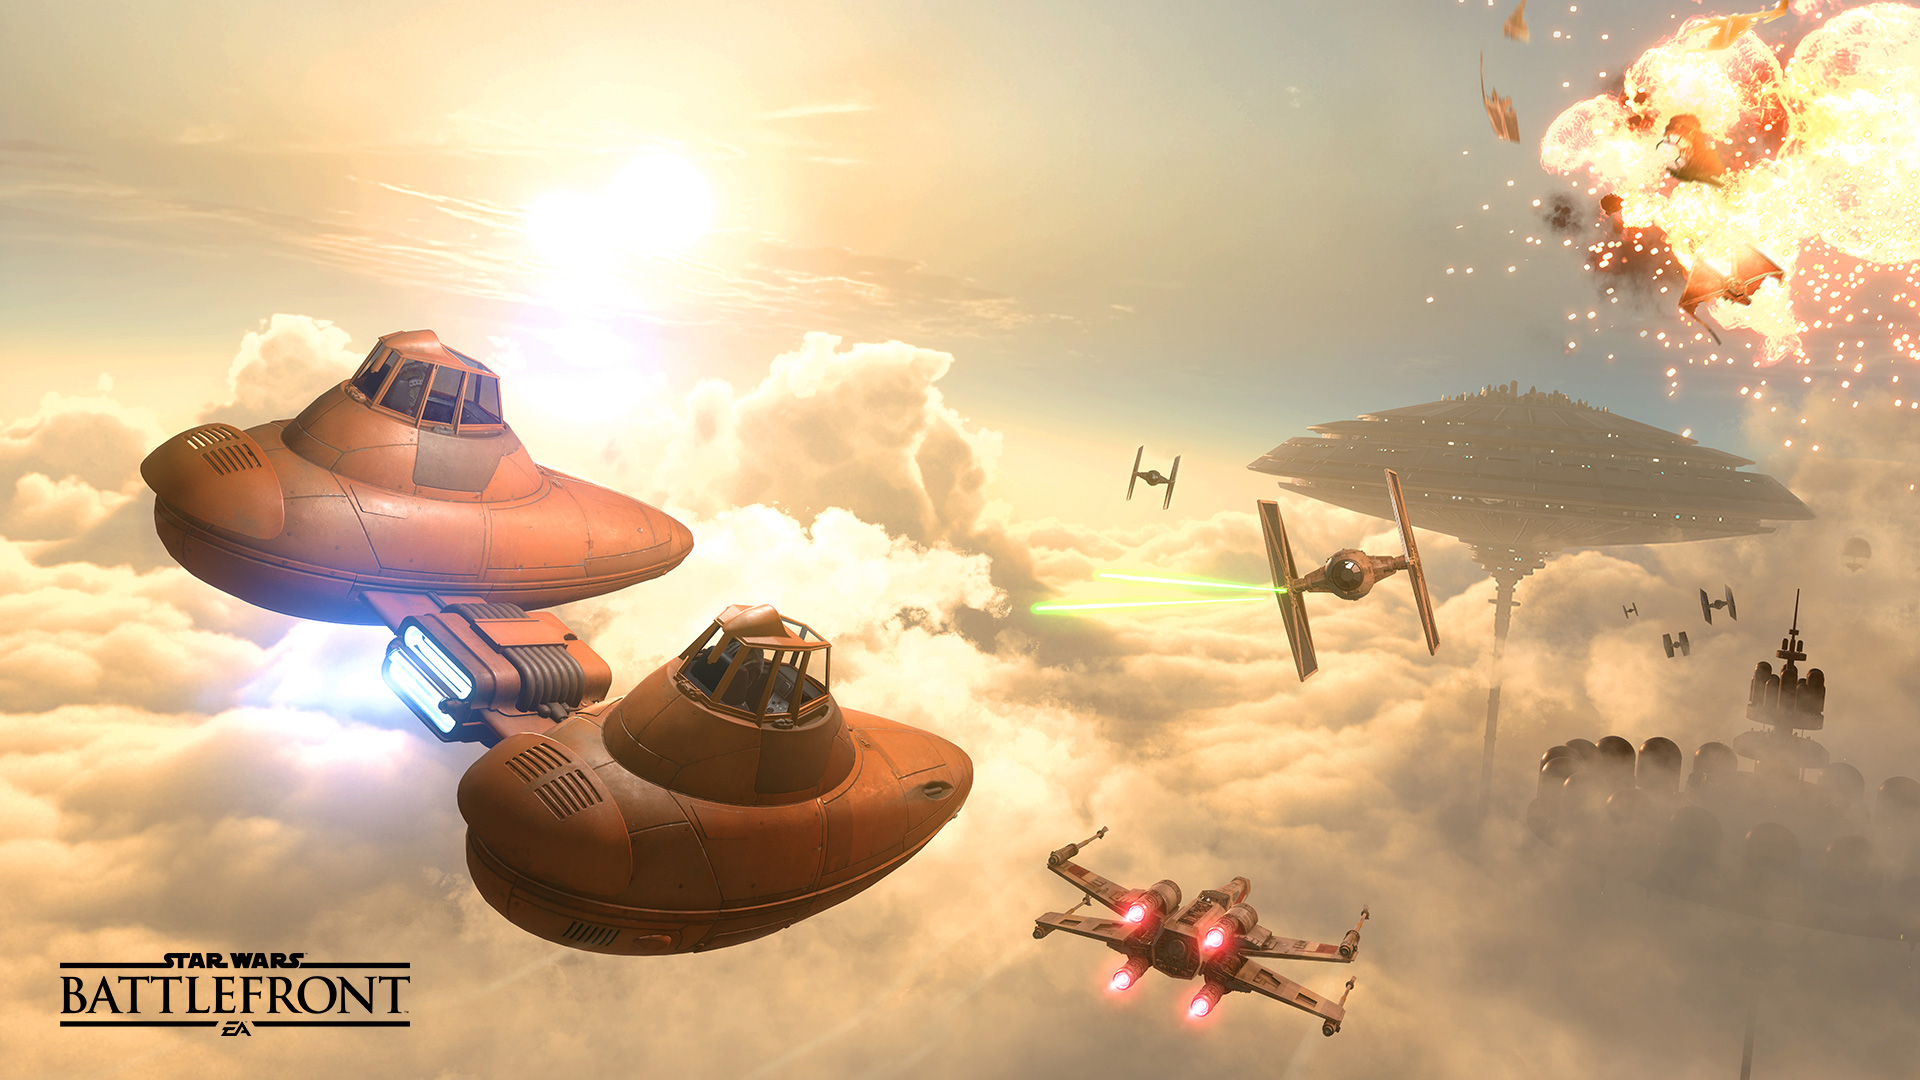 What's next for Star Wars™ Battlefront™ this Summer - Star